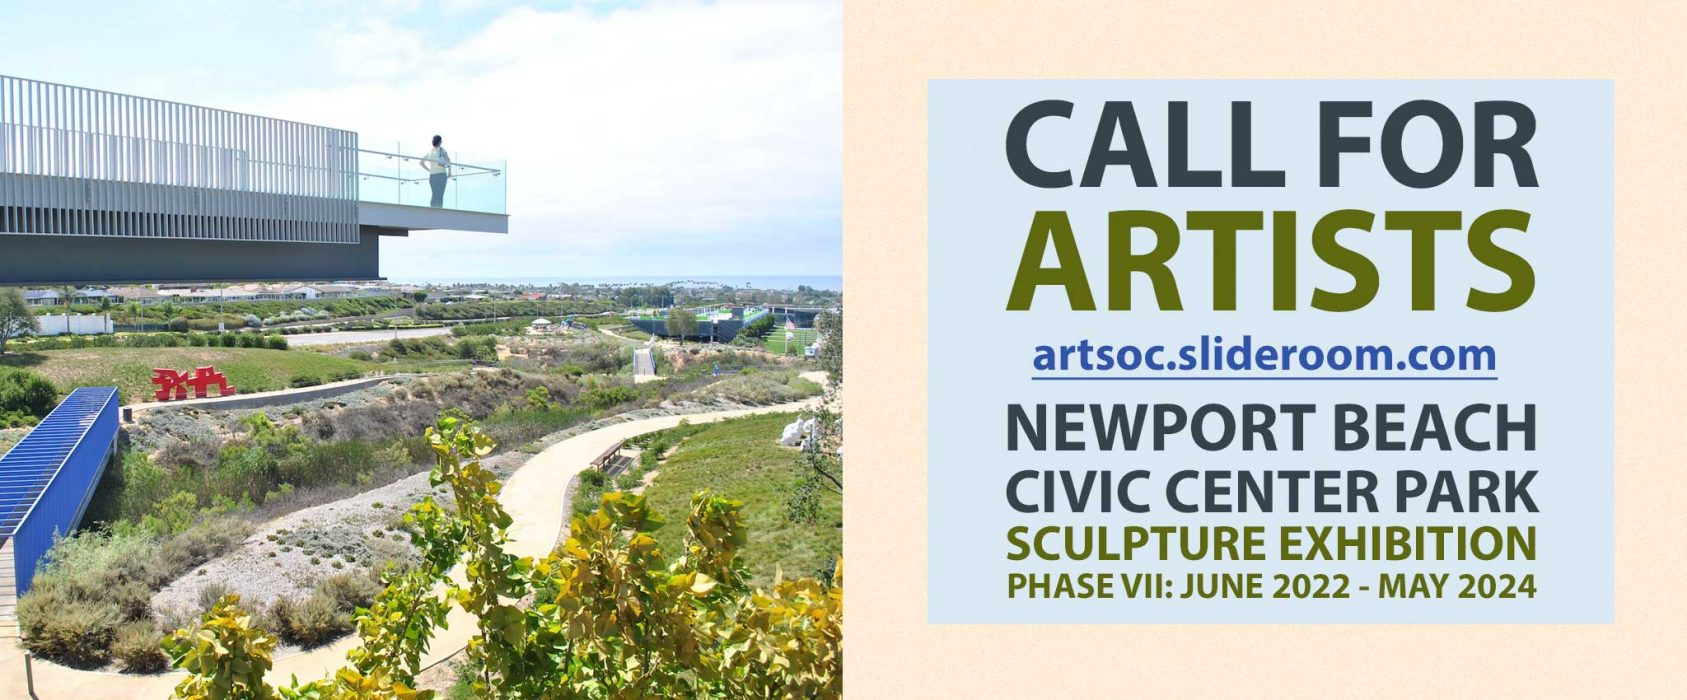 NB Sculpture Exhibition - Phase VII Call